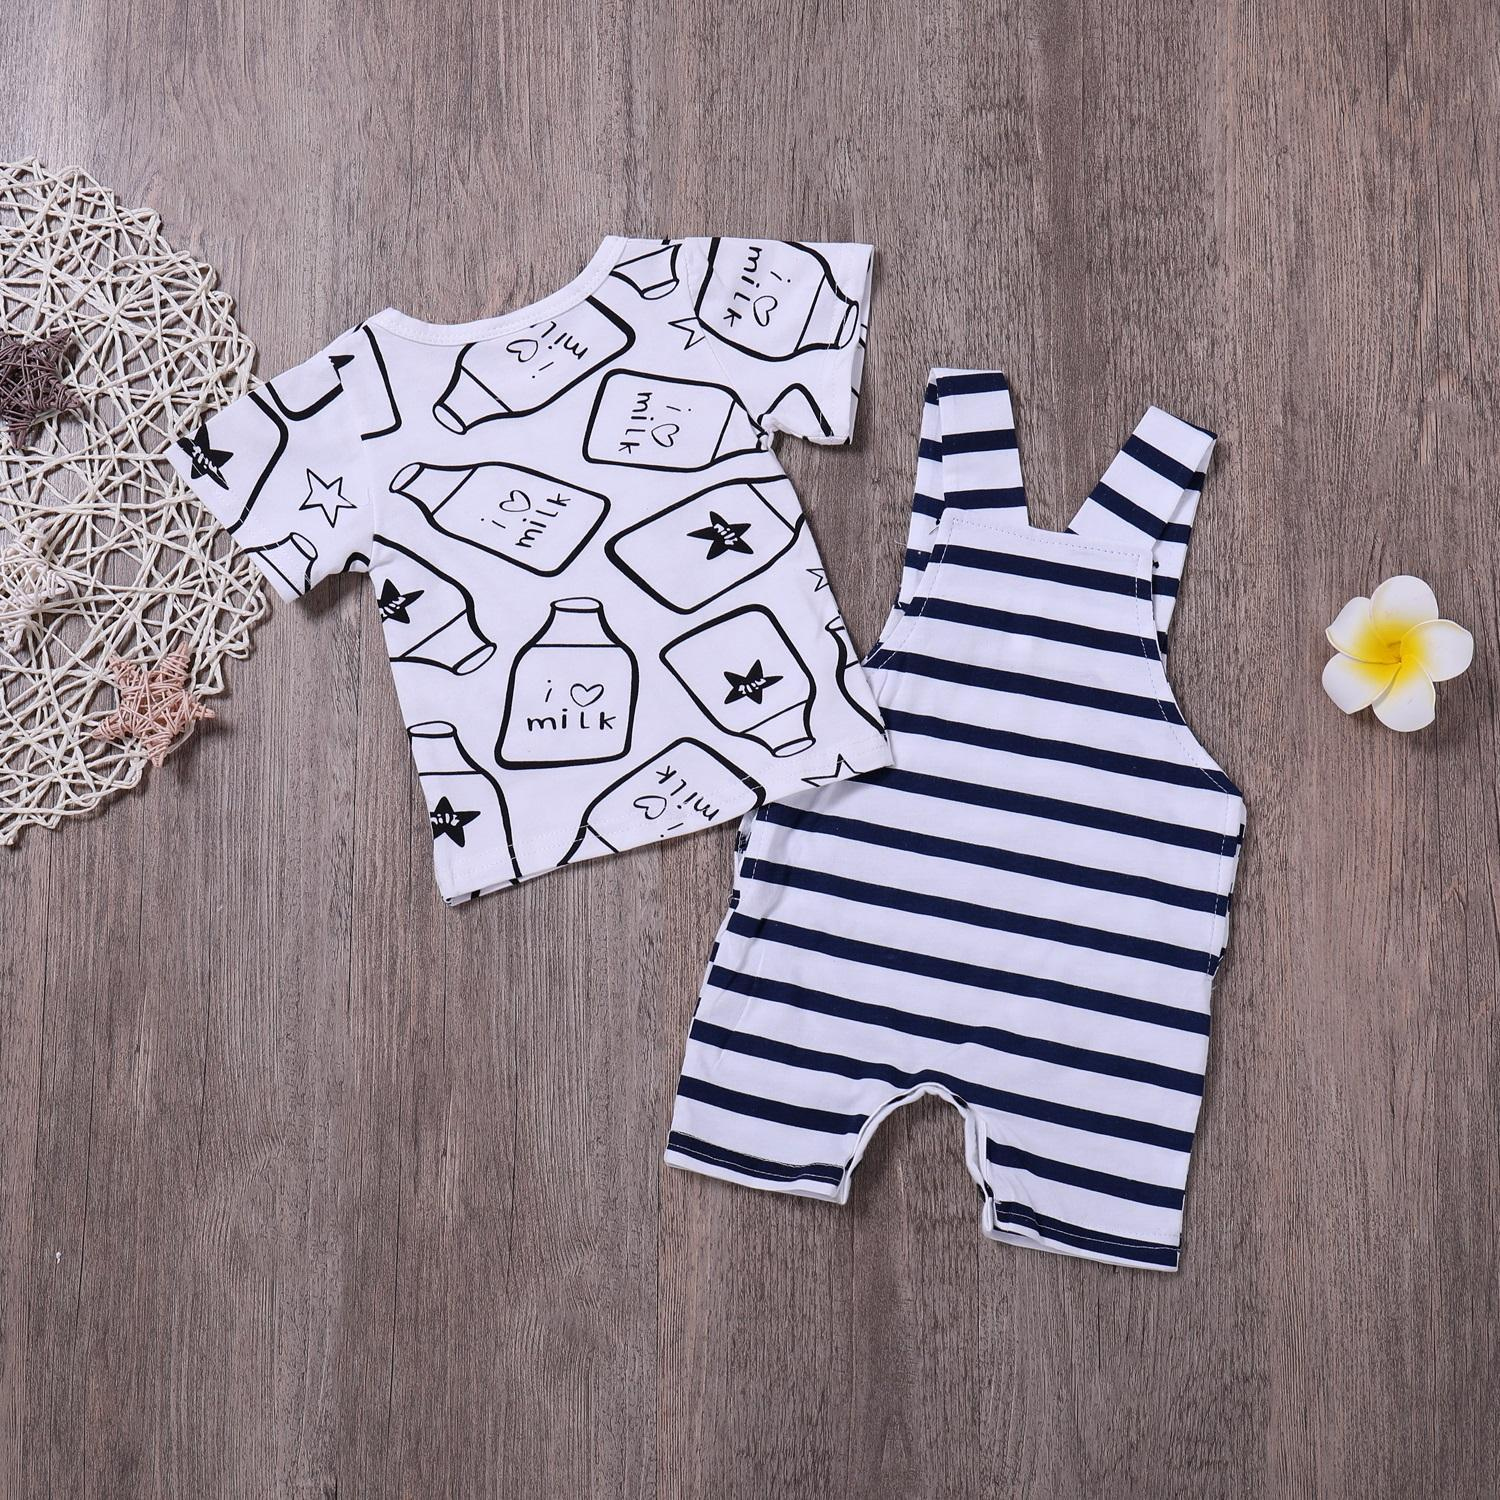 1 Set Infant Clothing Boys Baby T shirt and Dungaree